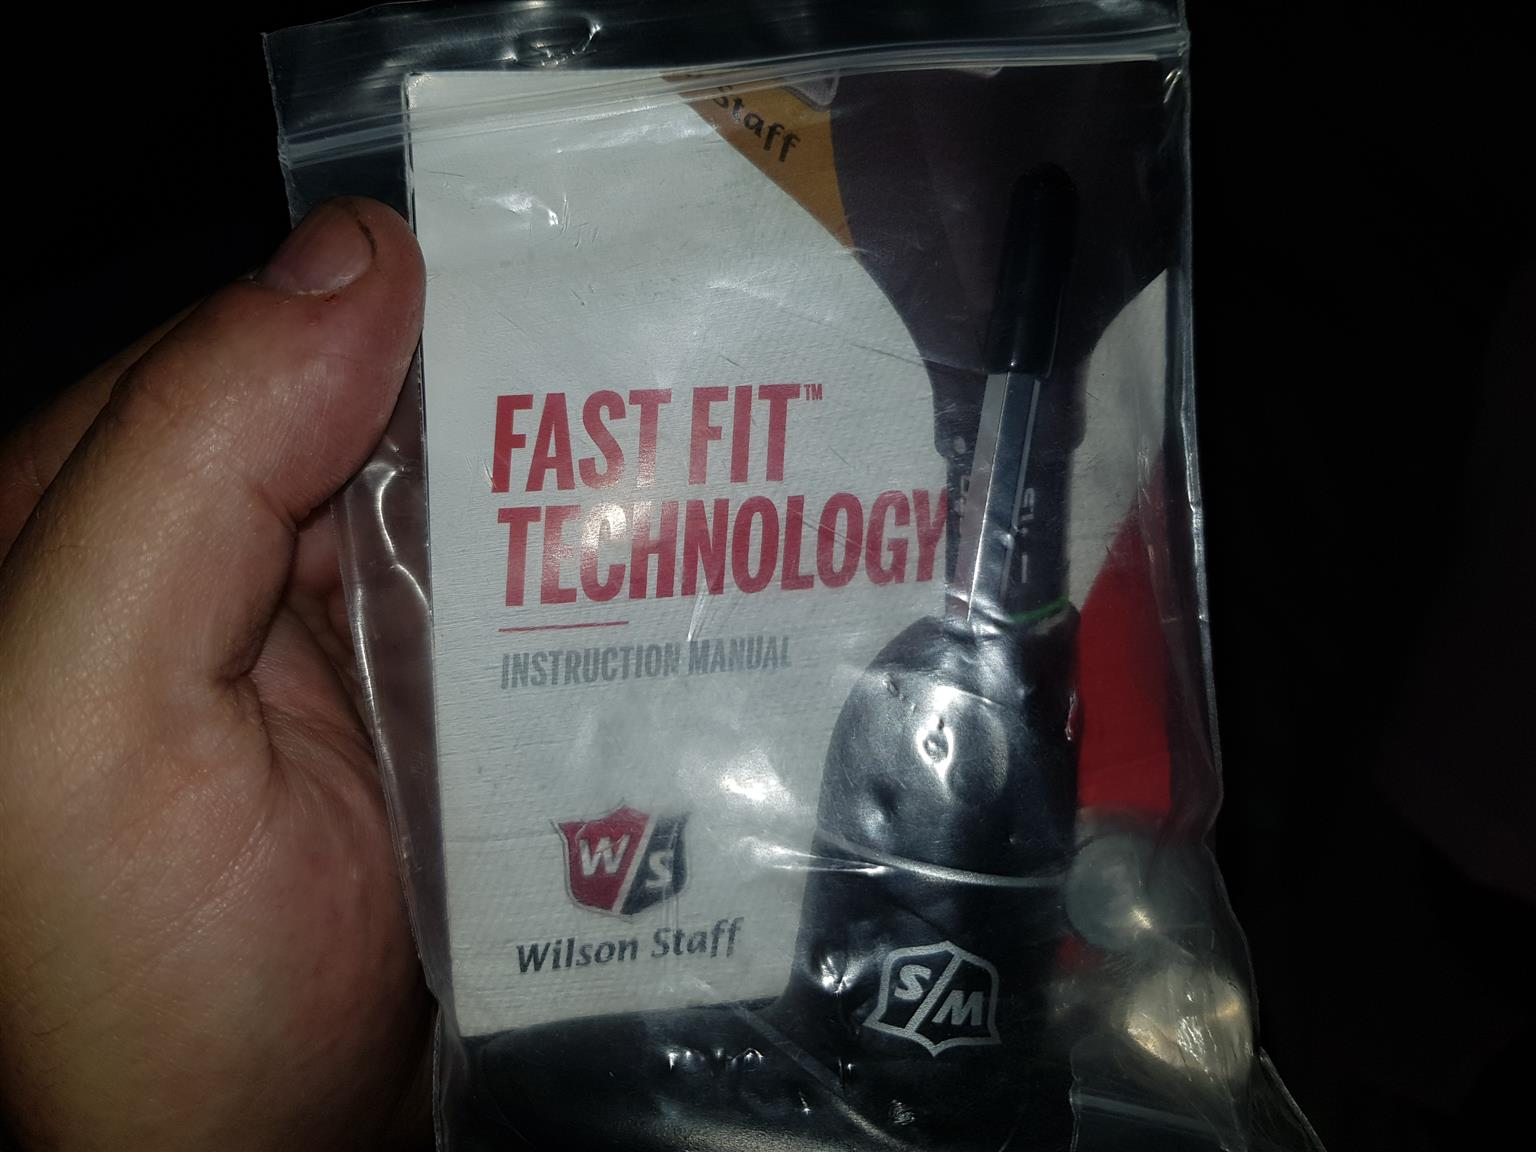 Wilson Staff FG driver for sale